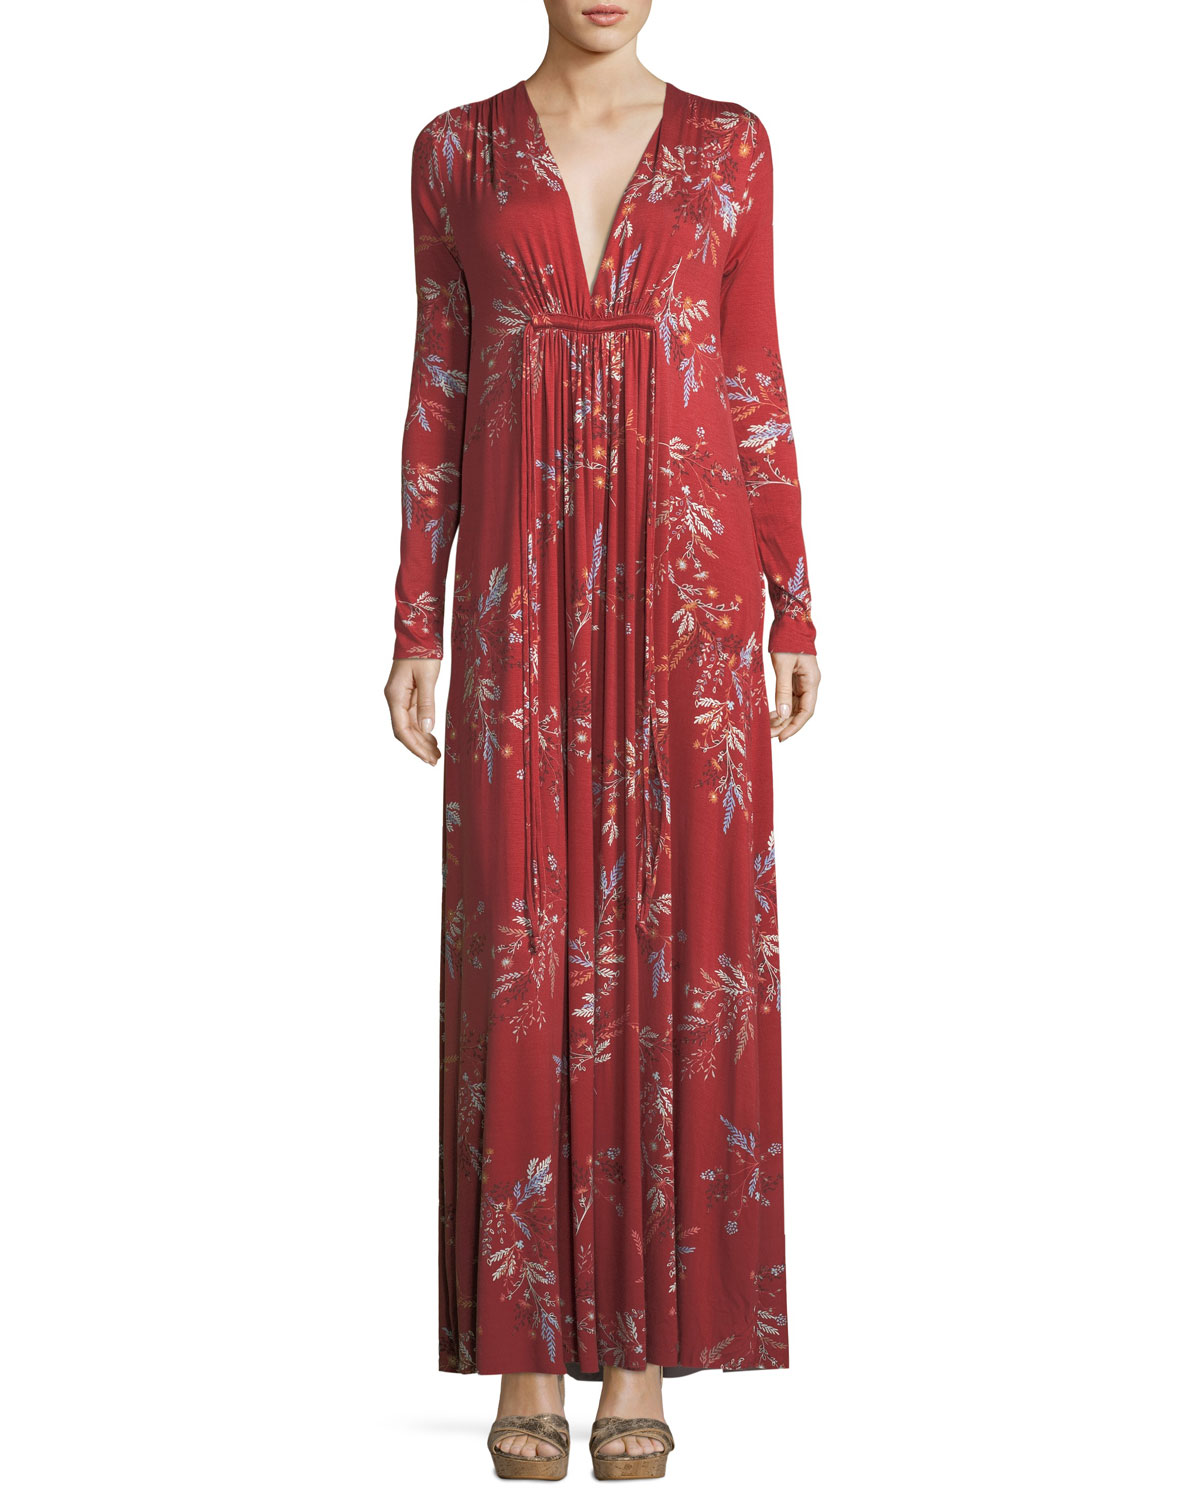 Long-Sleeve Floral-Print Maxi Dress, Plus Size